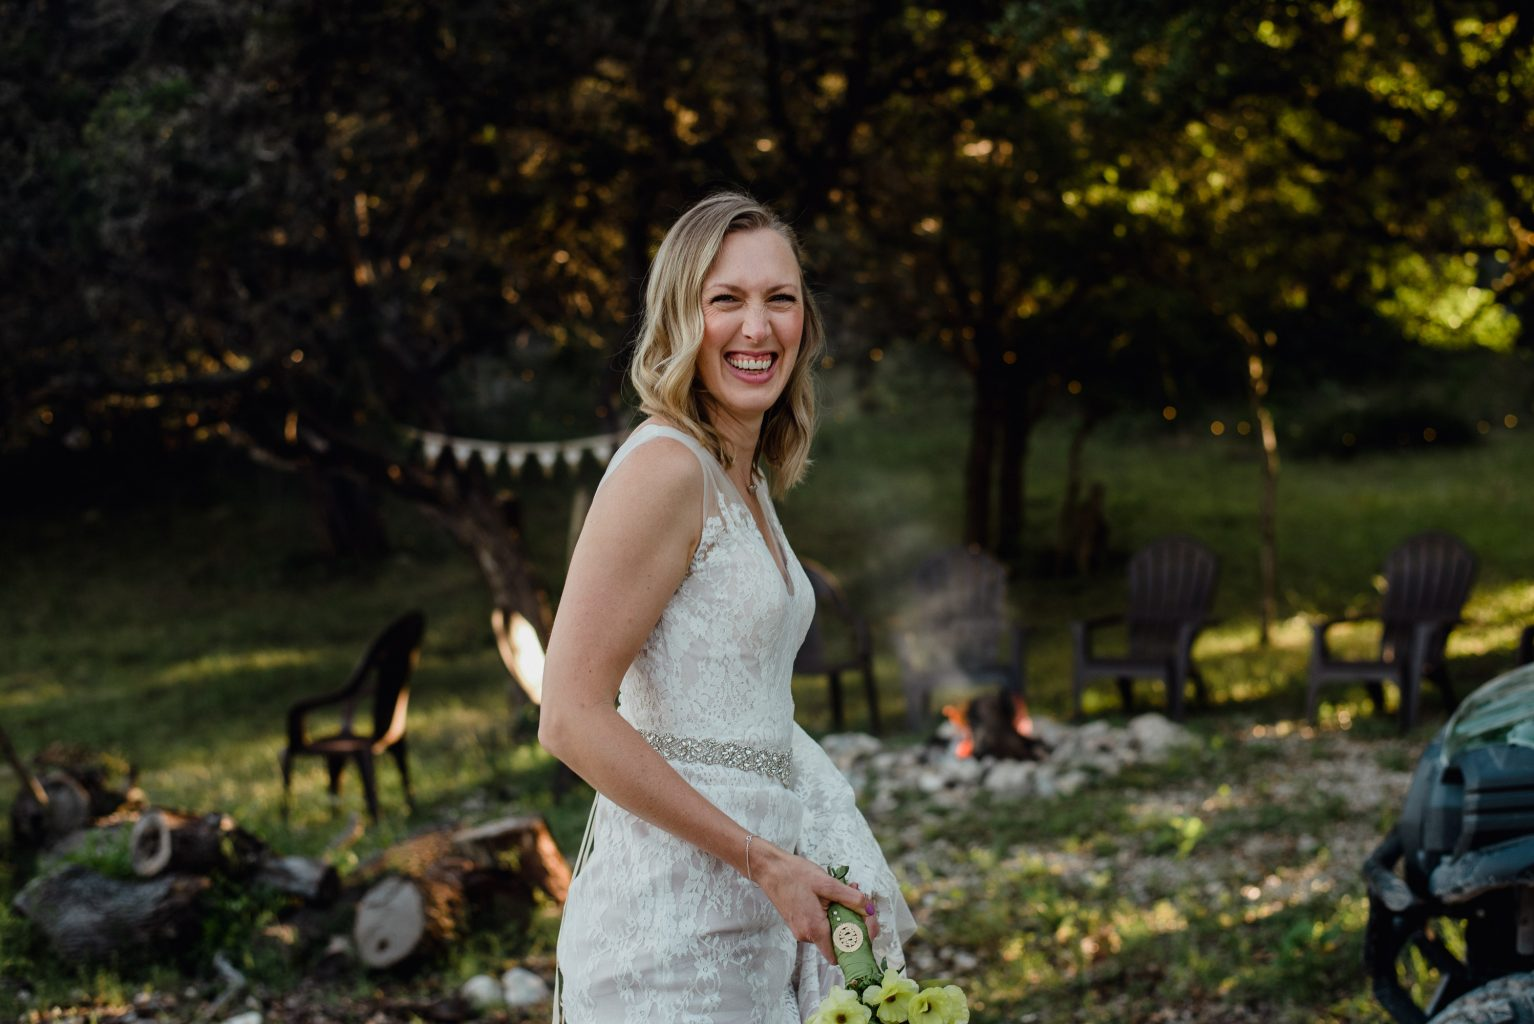 candid photo of a bride at her ranch wedding near San Antonio